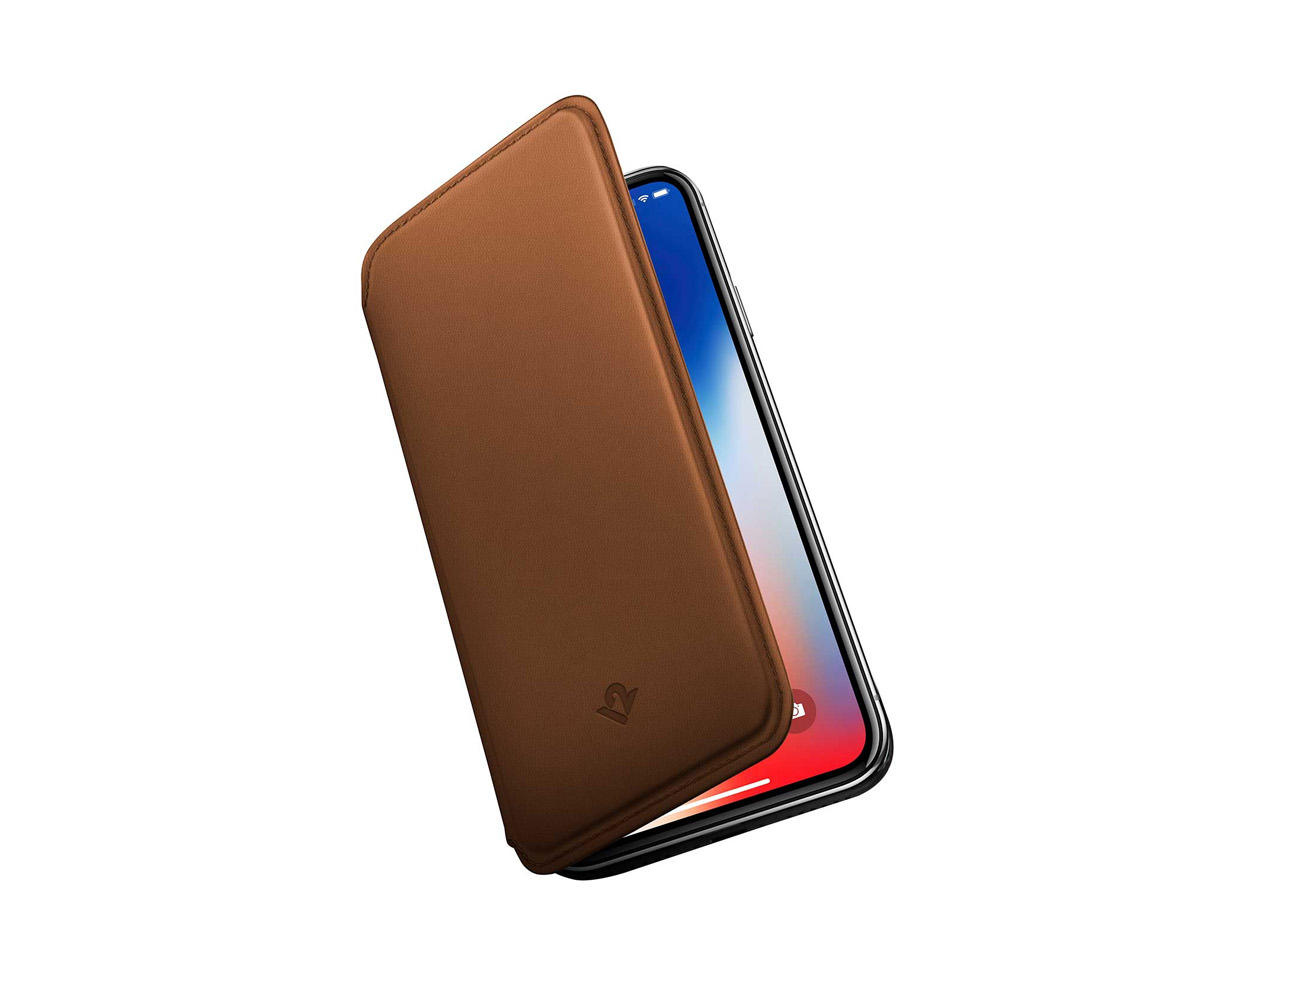 SurfacePad Smart Leather iPhone Cover